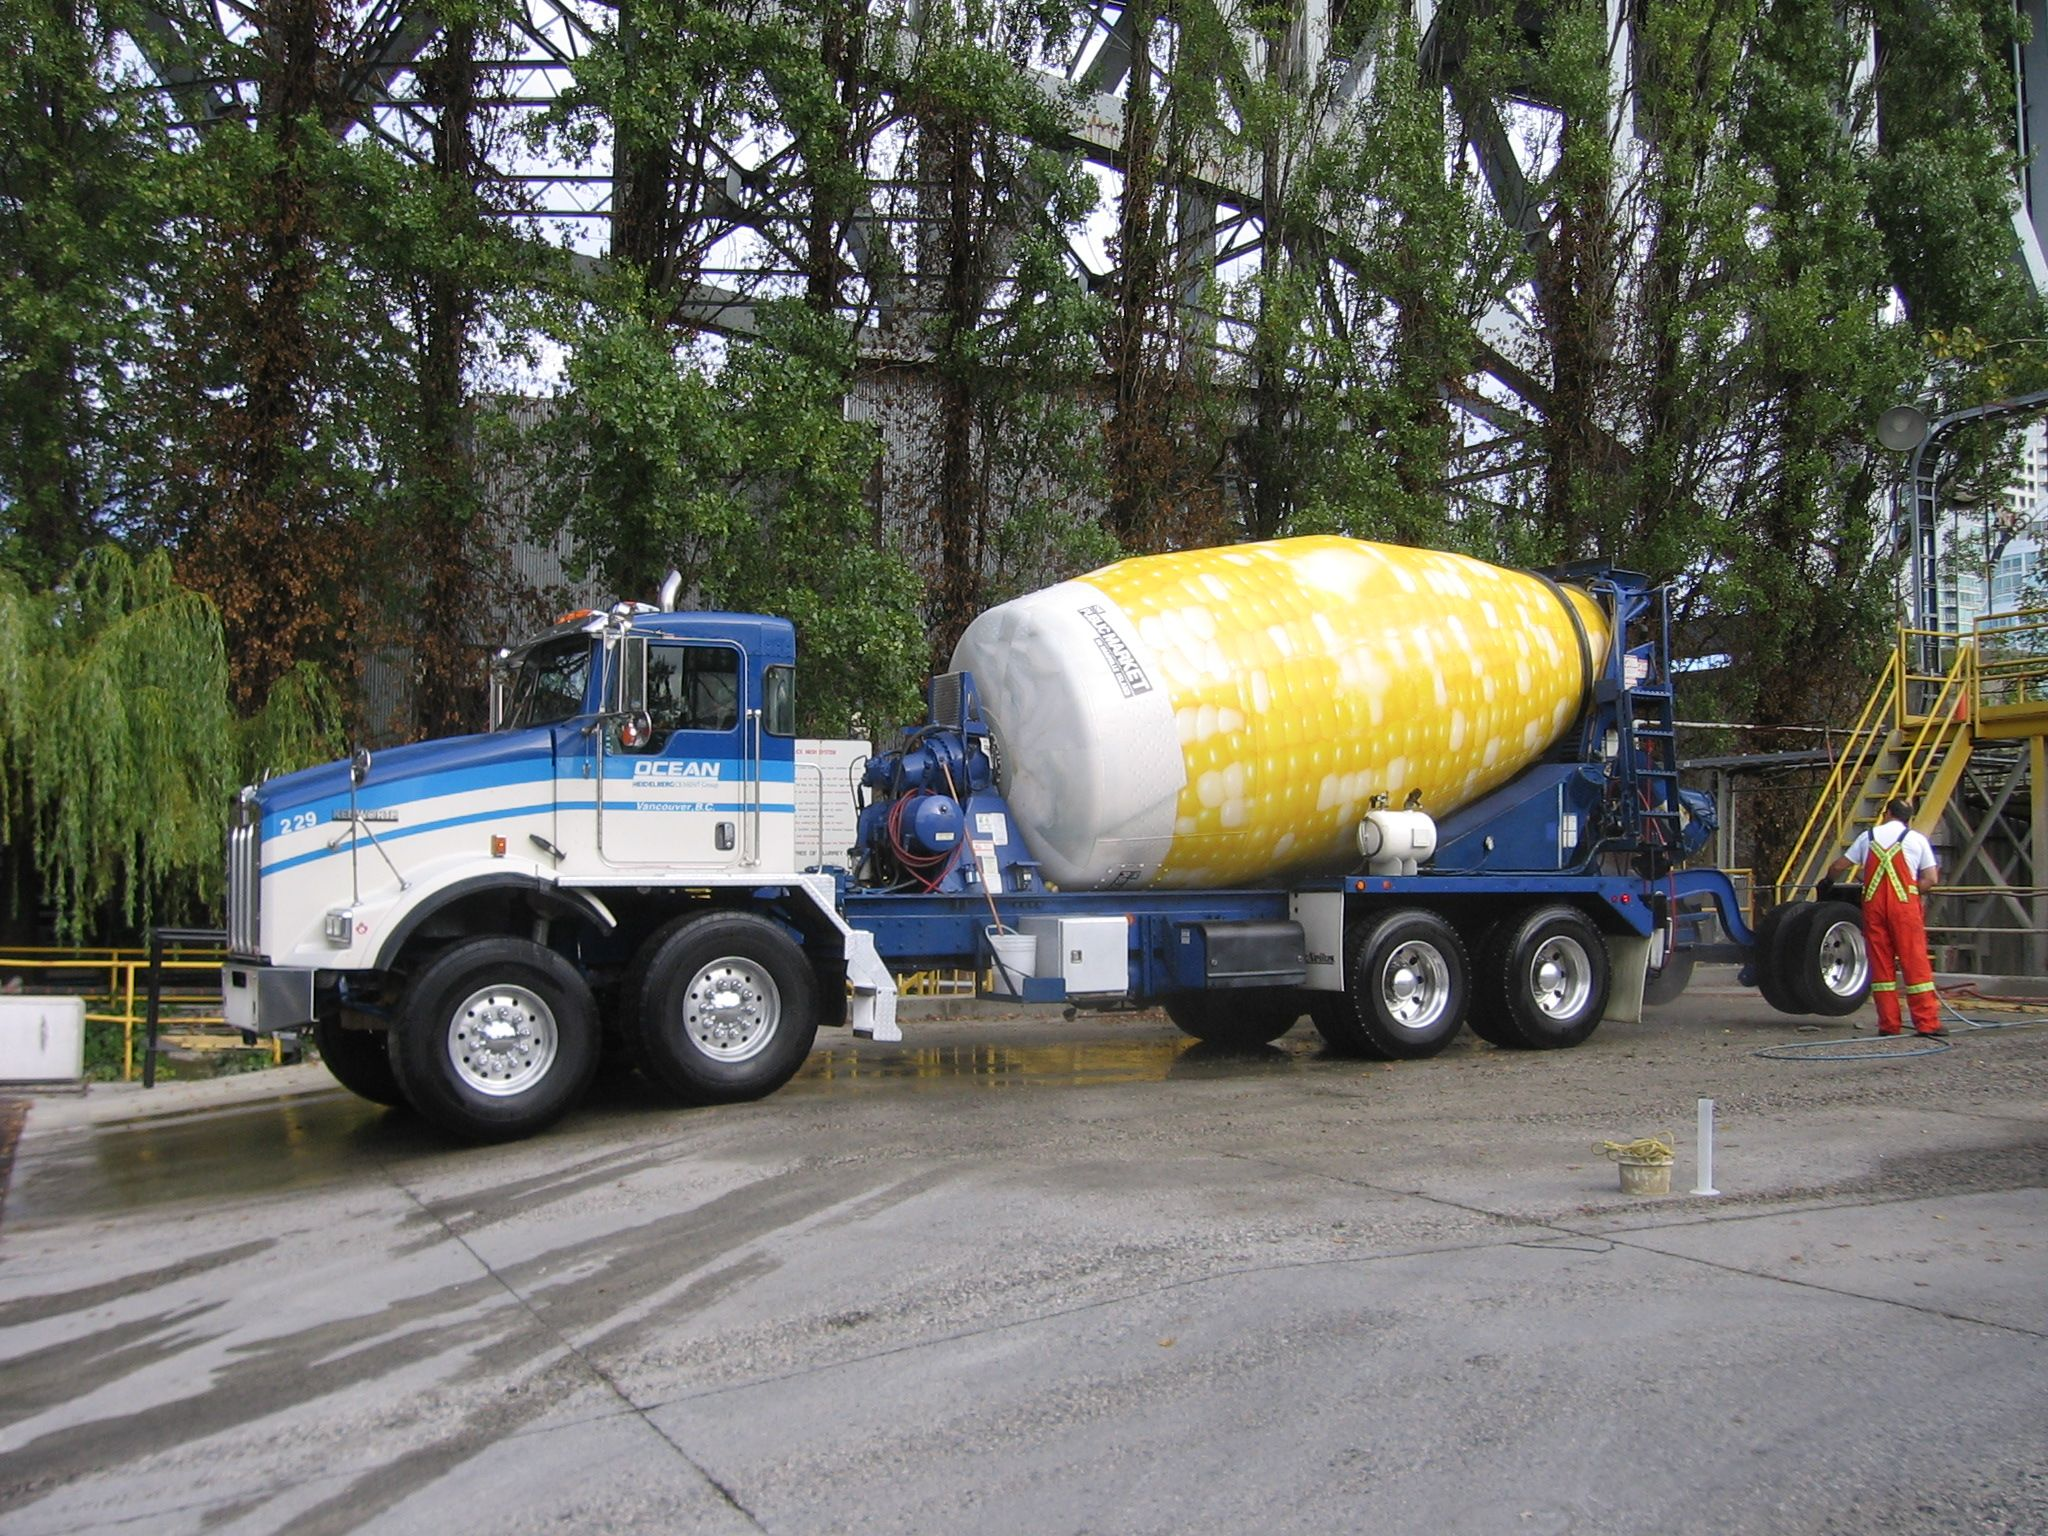 Ocean Concrete, a subsidiary of Lehigh Hanson Material Limited in